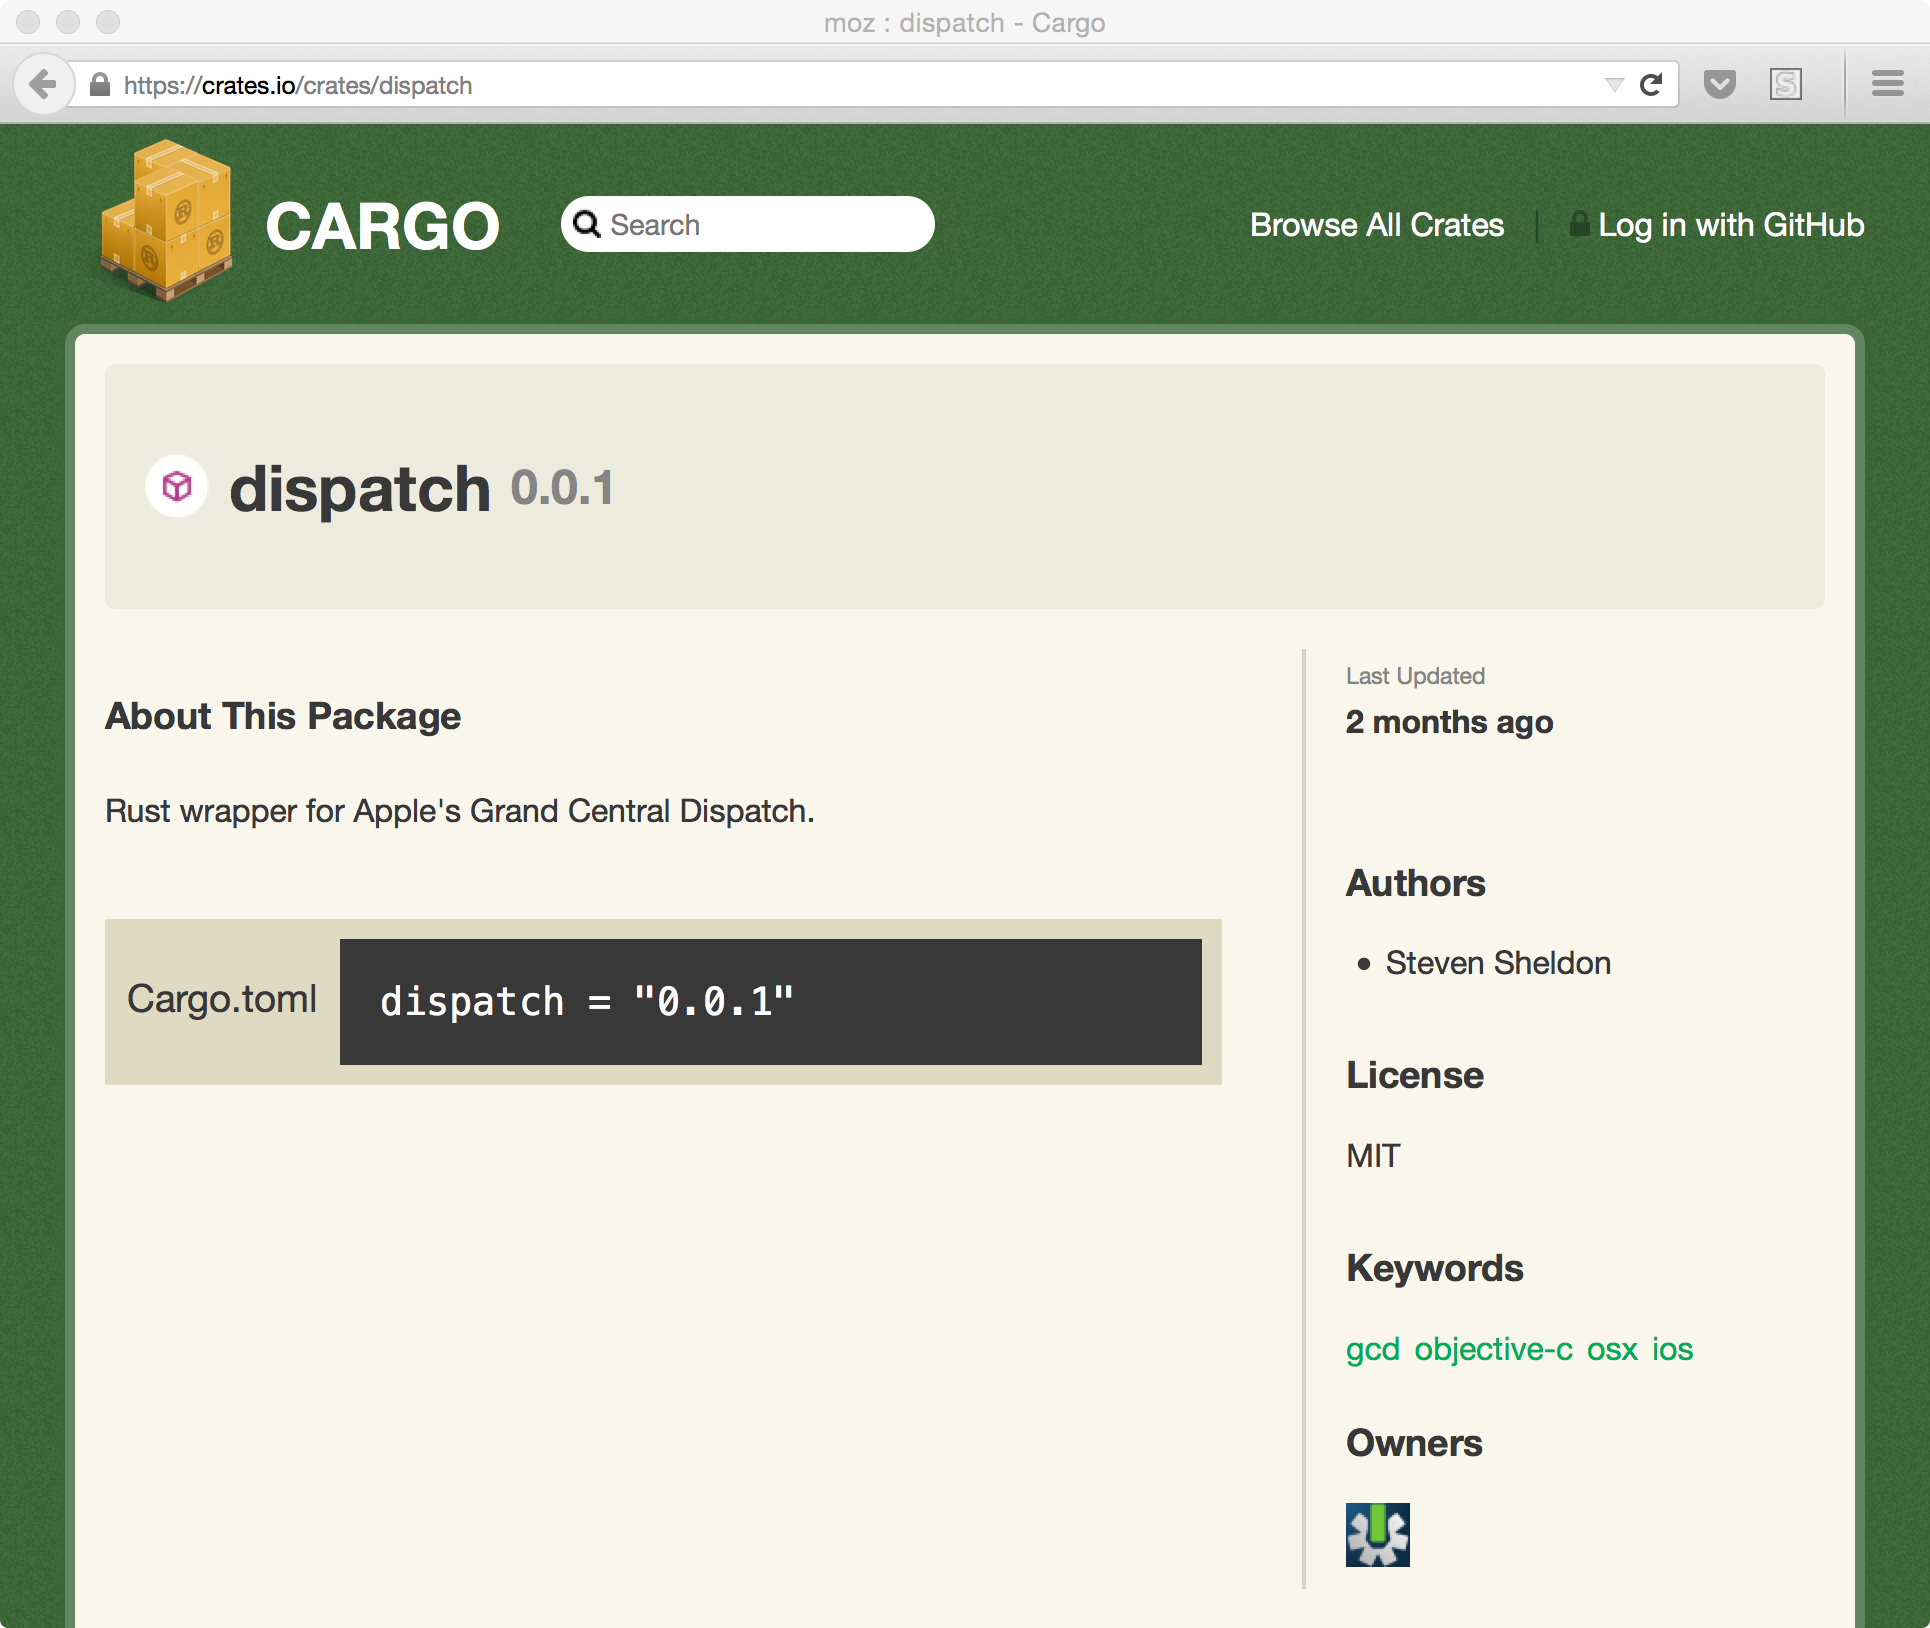 dispatch (from crates.io)